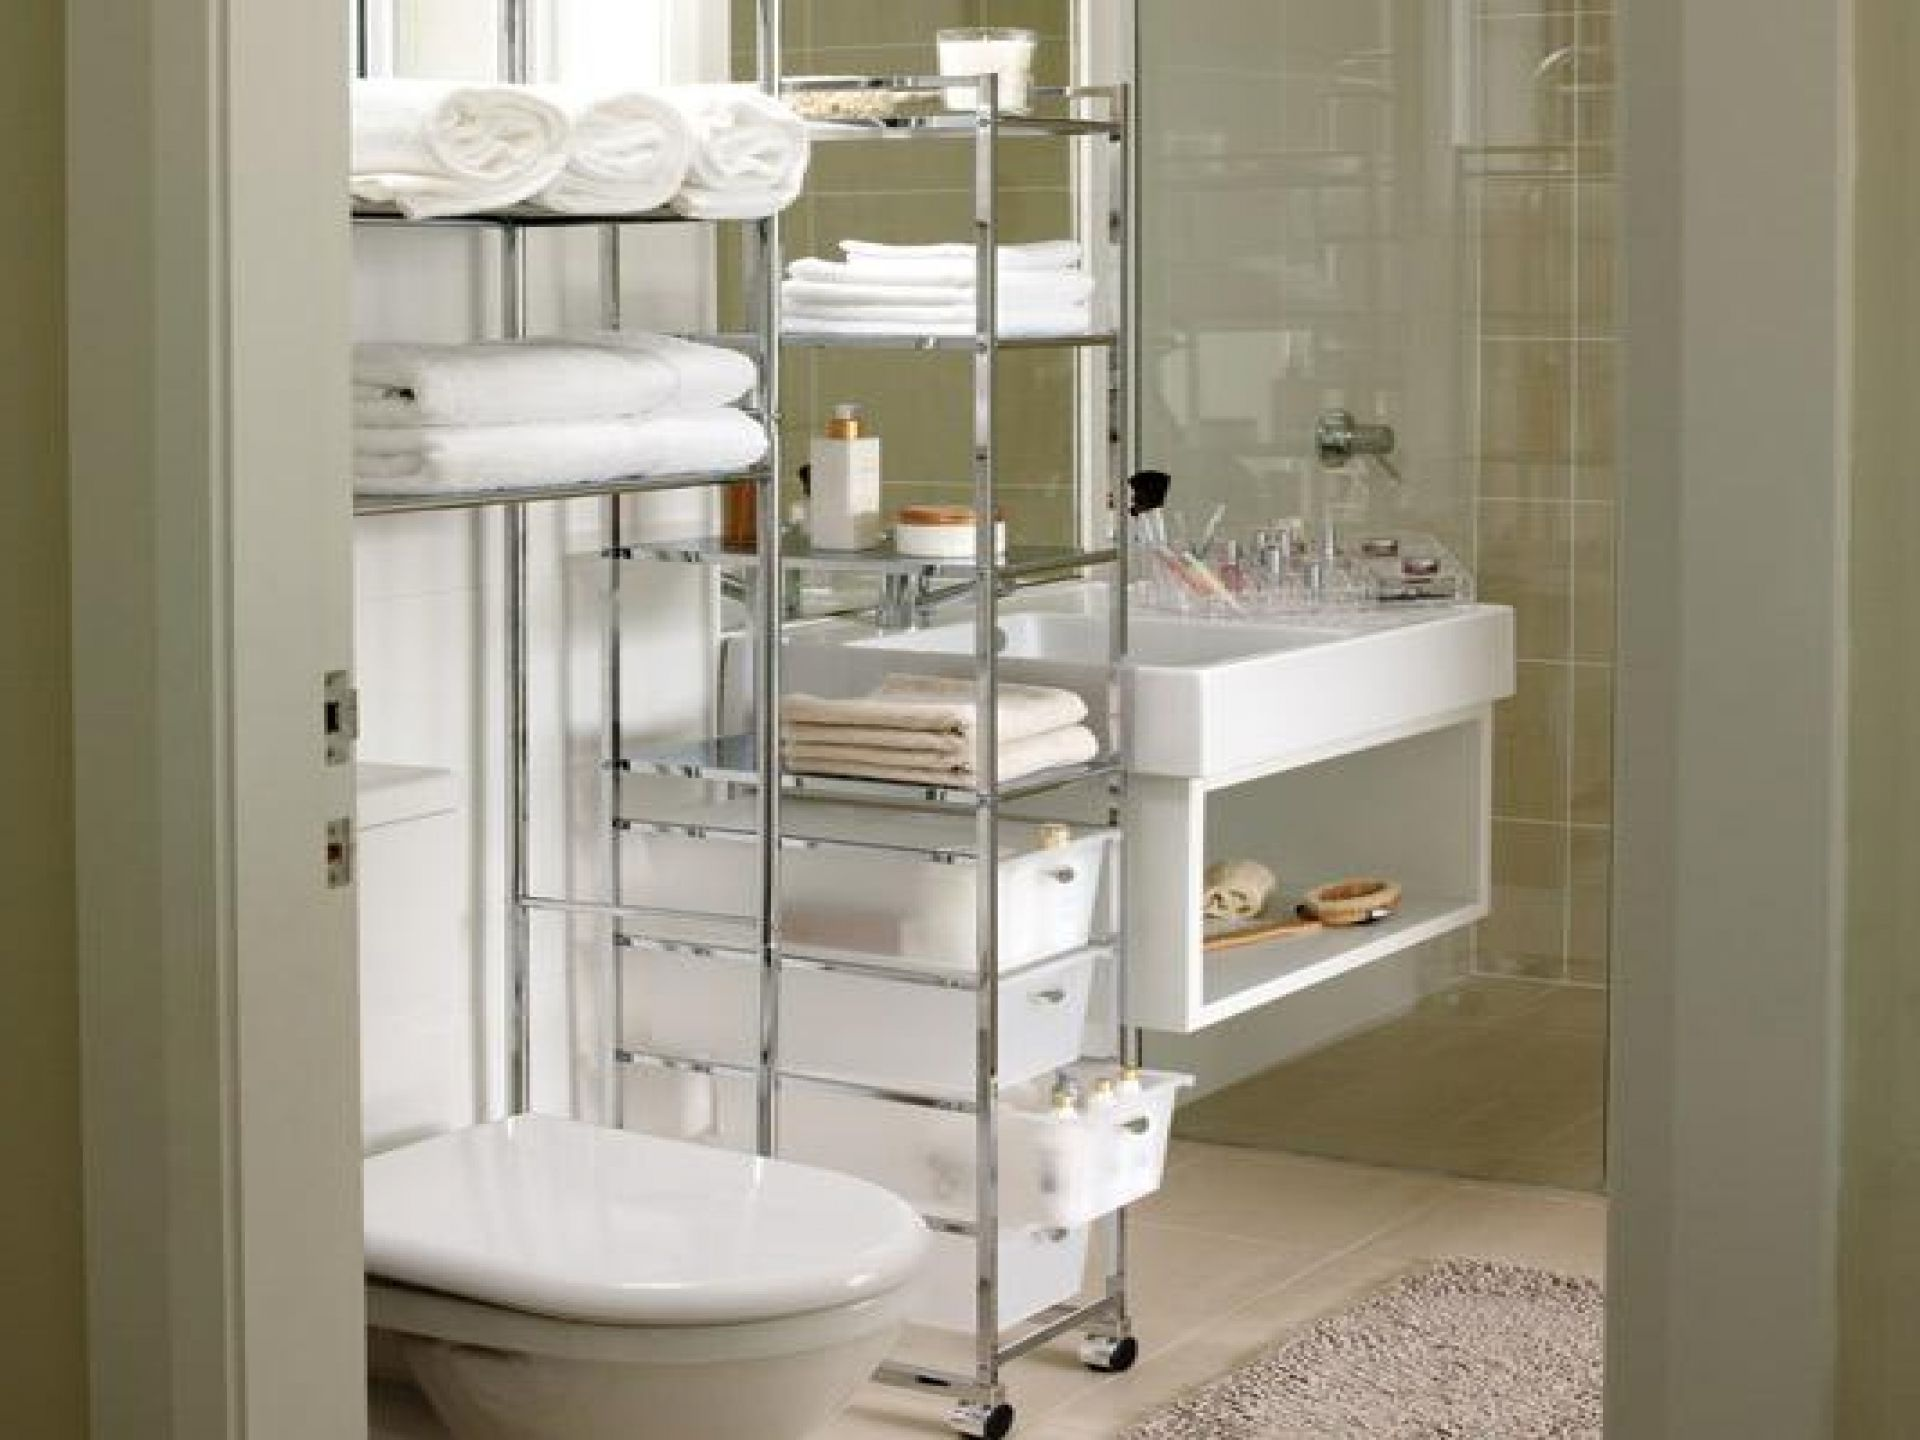 Bathroom Storage Ideas small bathroom cabinets ideas of decor idea bathroom storage ideas